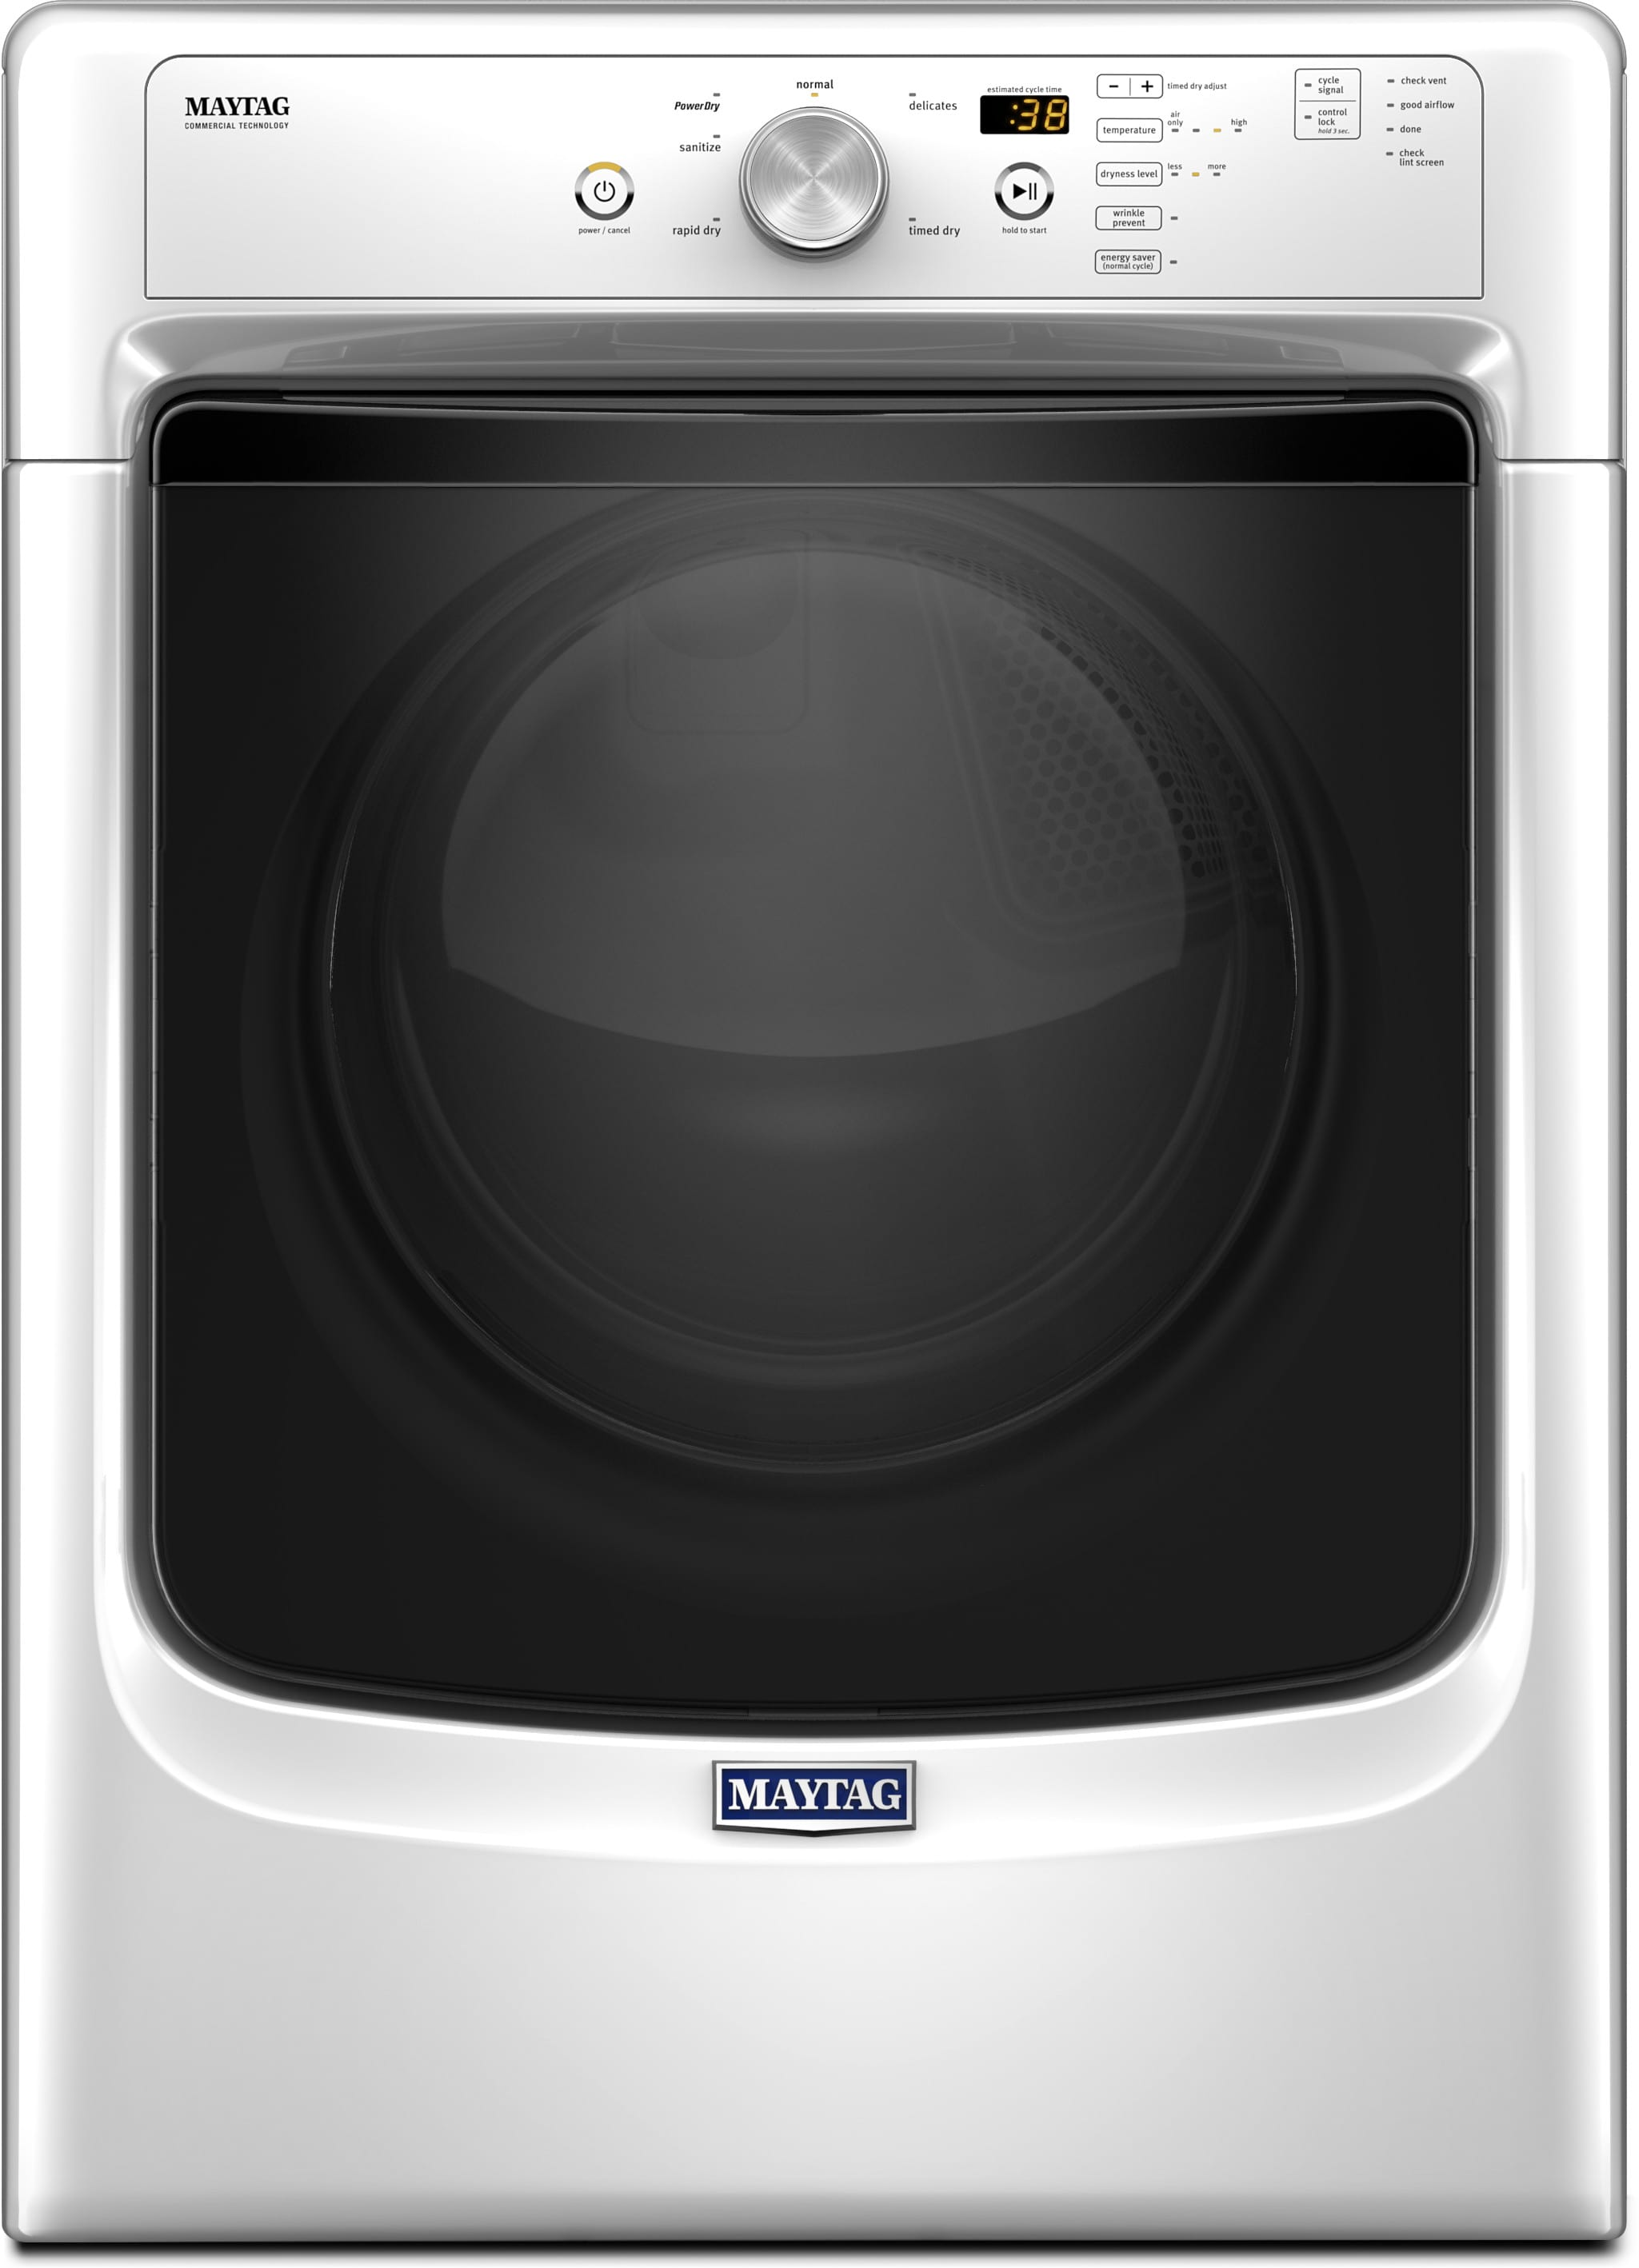 Maytag MED3500FW 27 Inch Electric Dryer with Power Dry Wrinkle